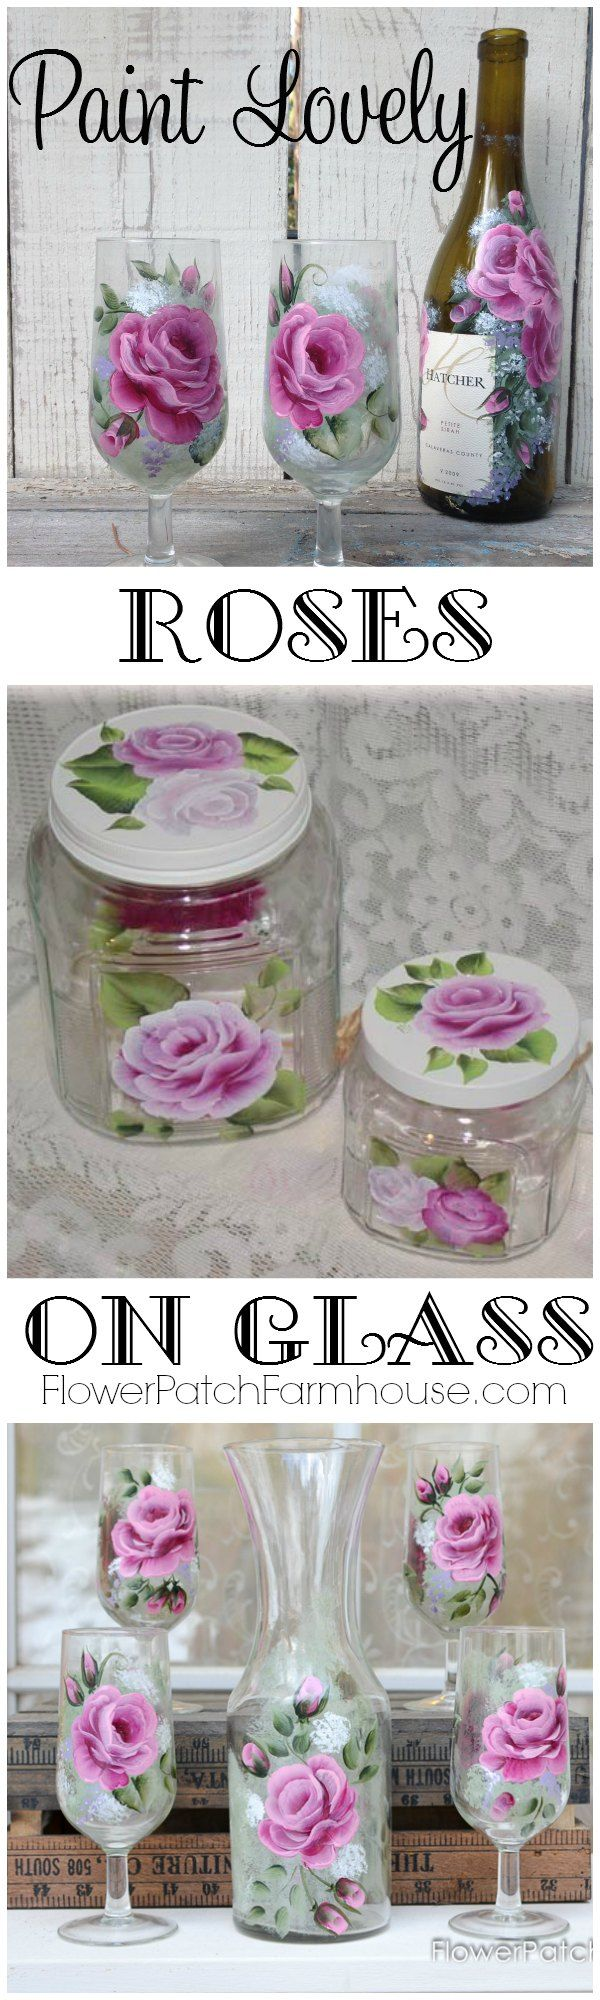 25 best ideas about painting on glass on pinterest for How to paint a rose step by step